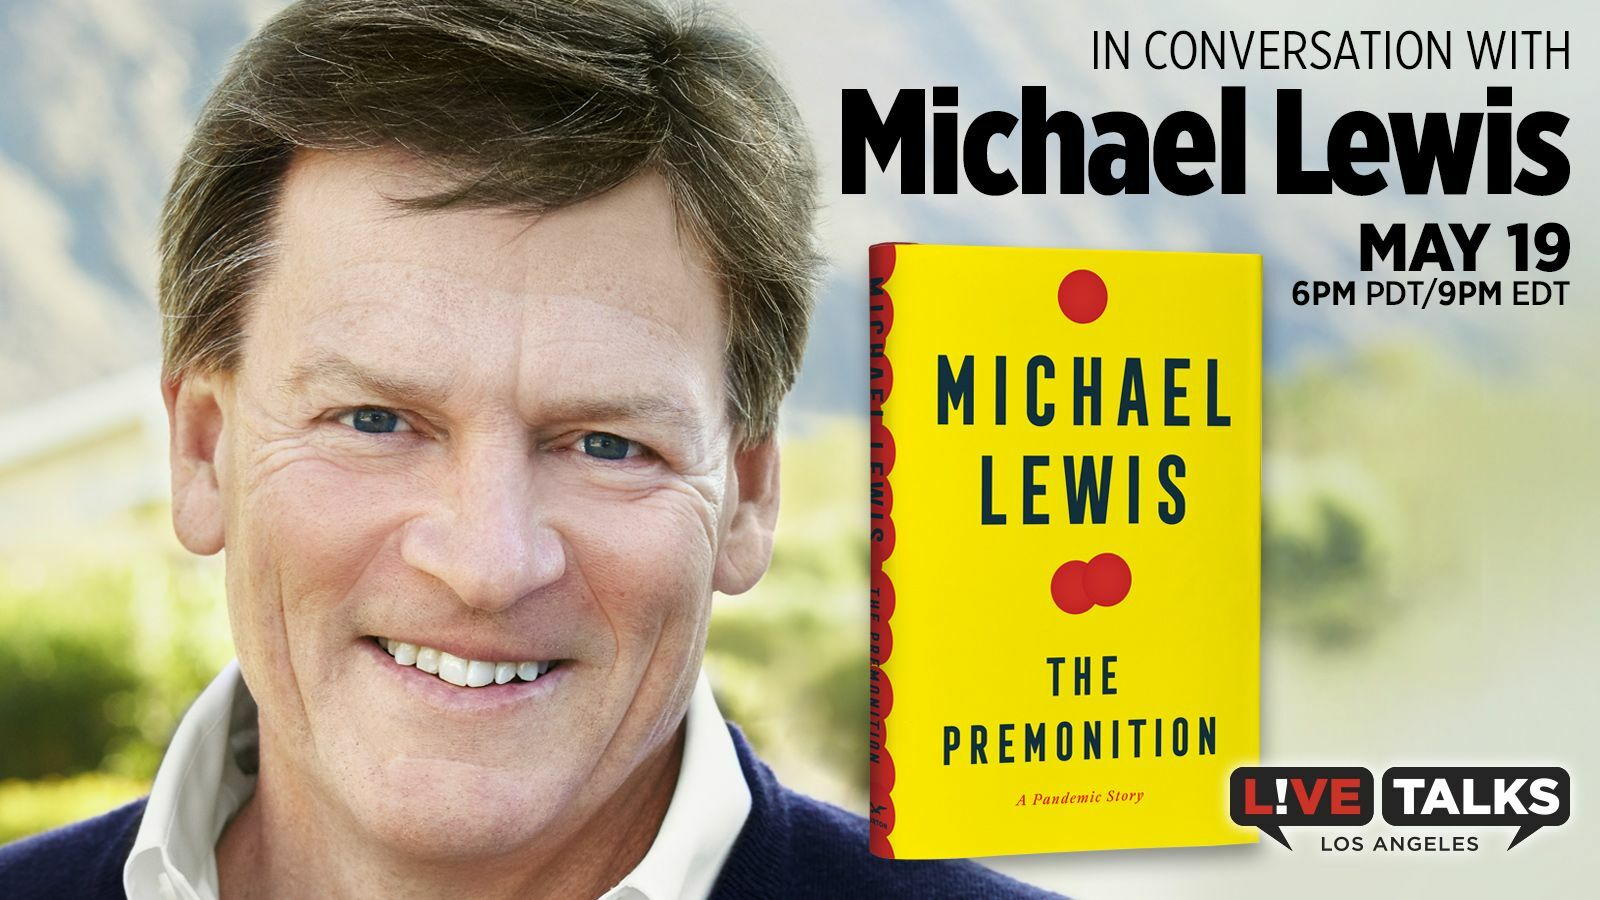 An Evening with Michael Lewis - Online